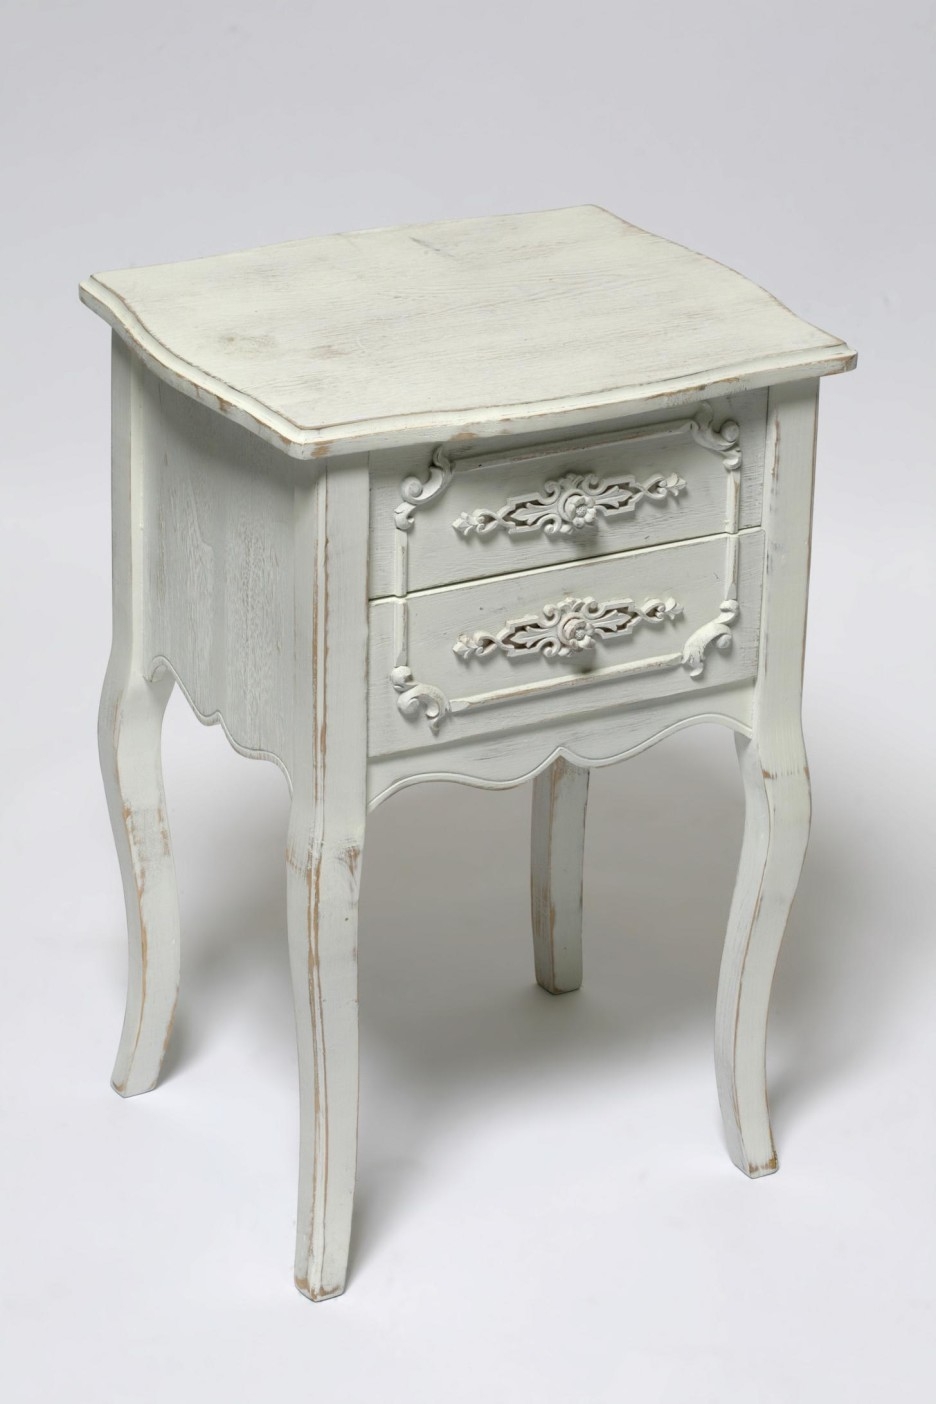 white end table drawer the super awesome small distressed top superb round nightstand bedside tables design grey and glass chairside kohls free shipping code front room gold